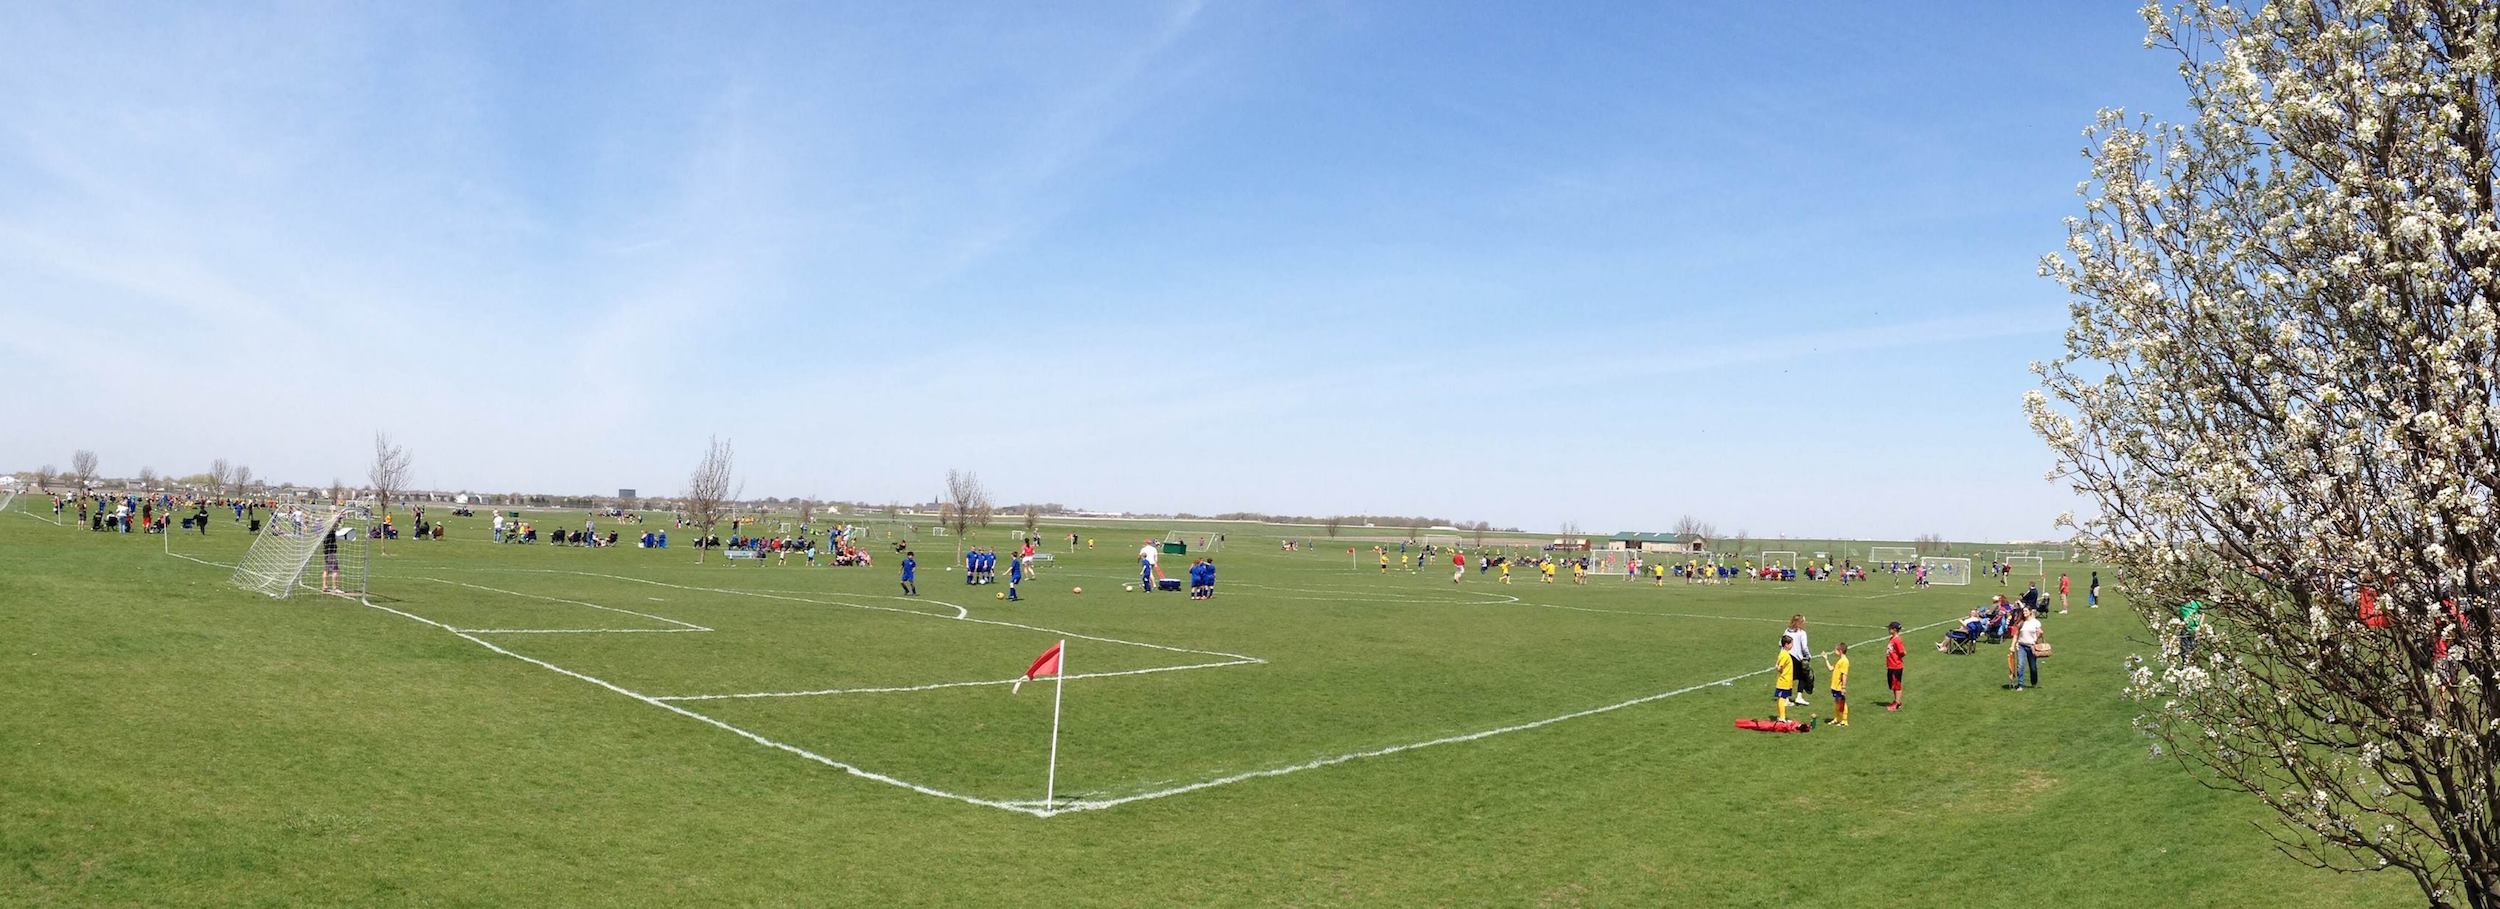 The Prairie Community Soccer League is in charge of operating the current sports complex at Bloomington's Central Illinois Regional Airport, where several local sports leagues regularly hold practices and games. (Image credit: PCSL Facebook)